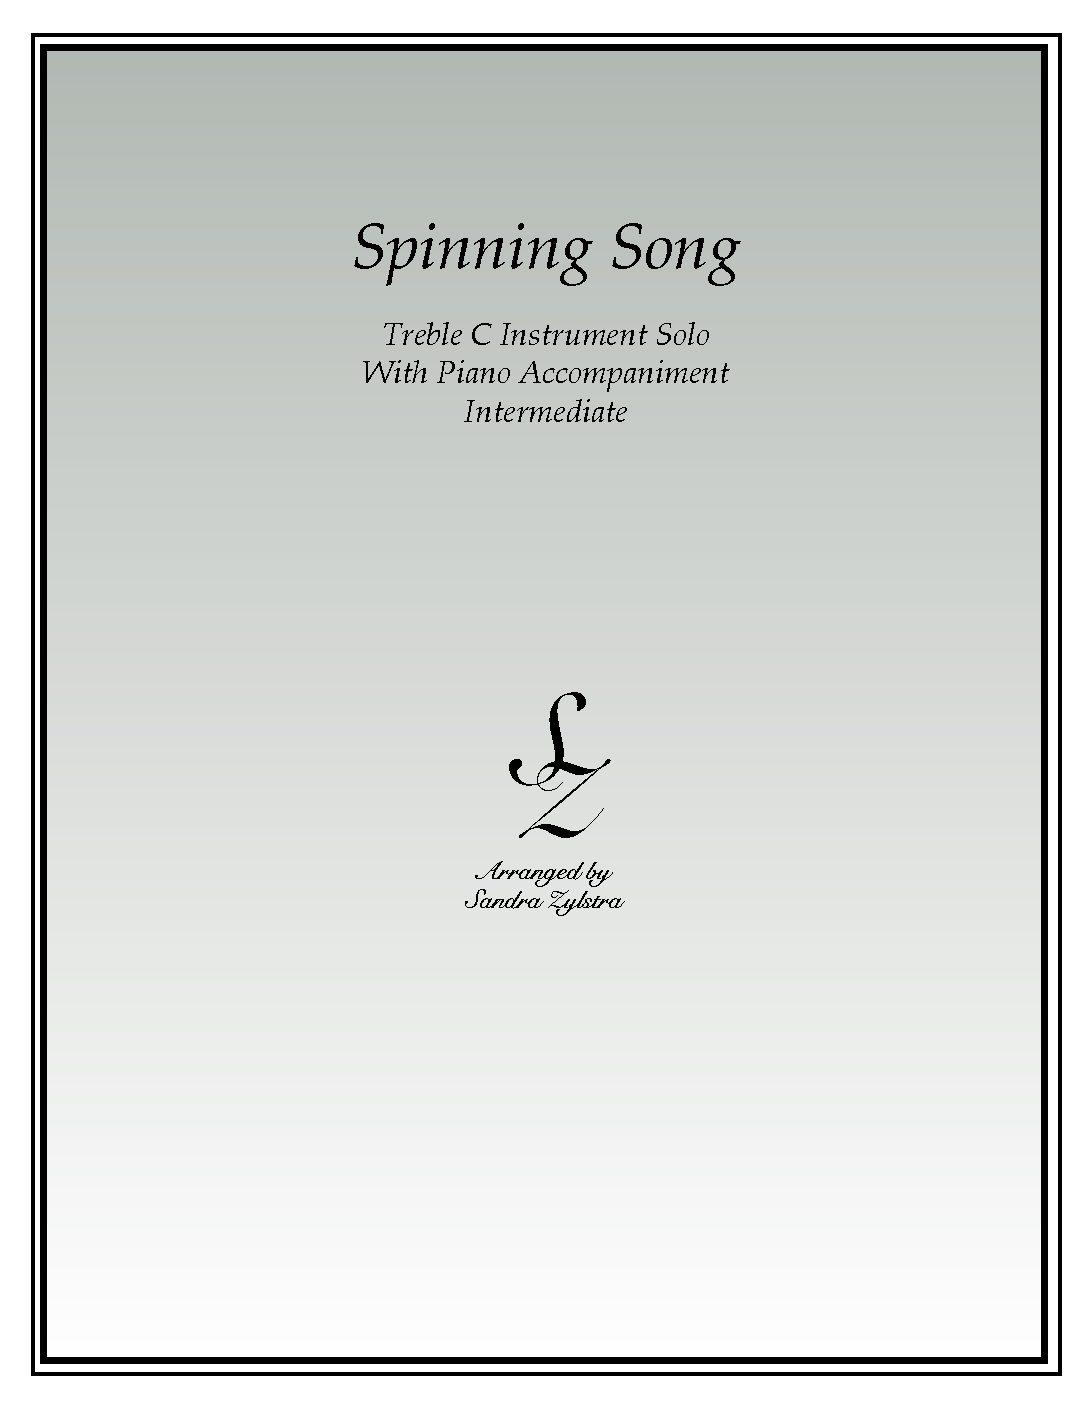 Spinning Song -Treble C Instrument Solo